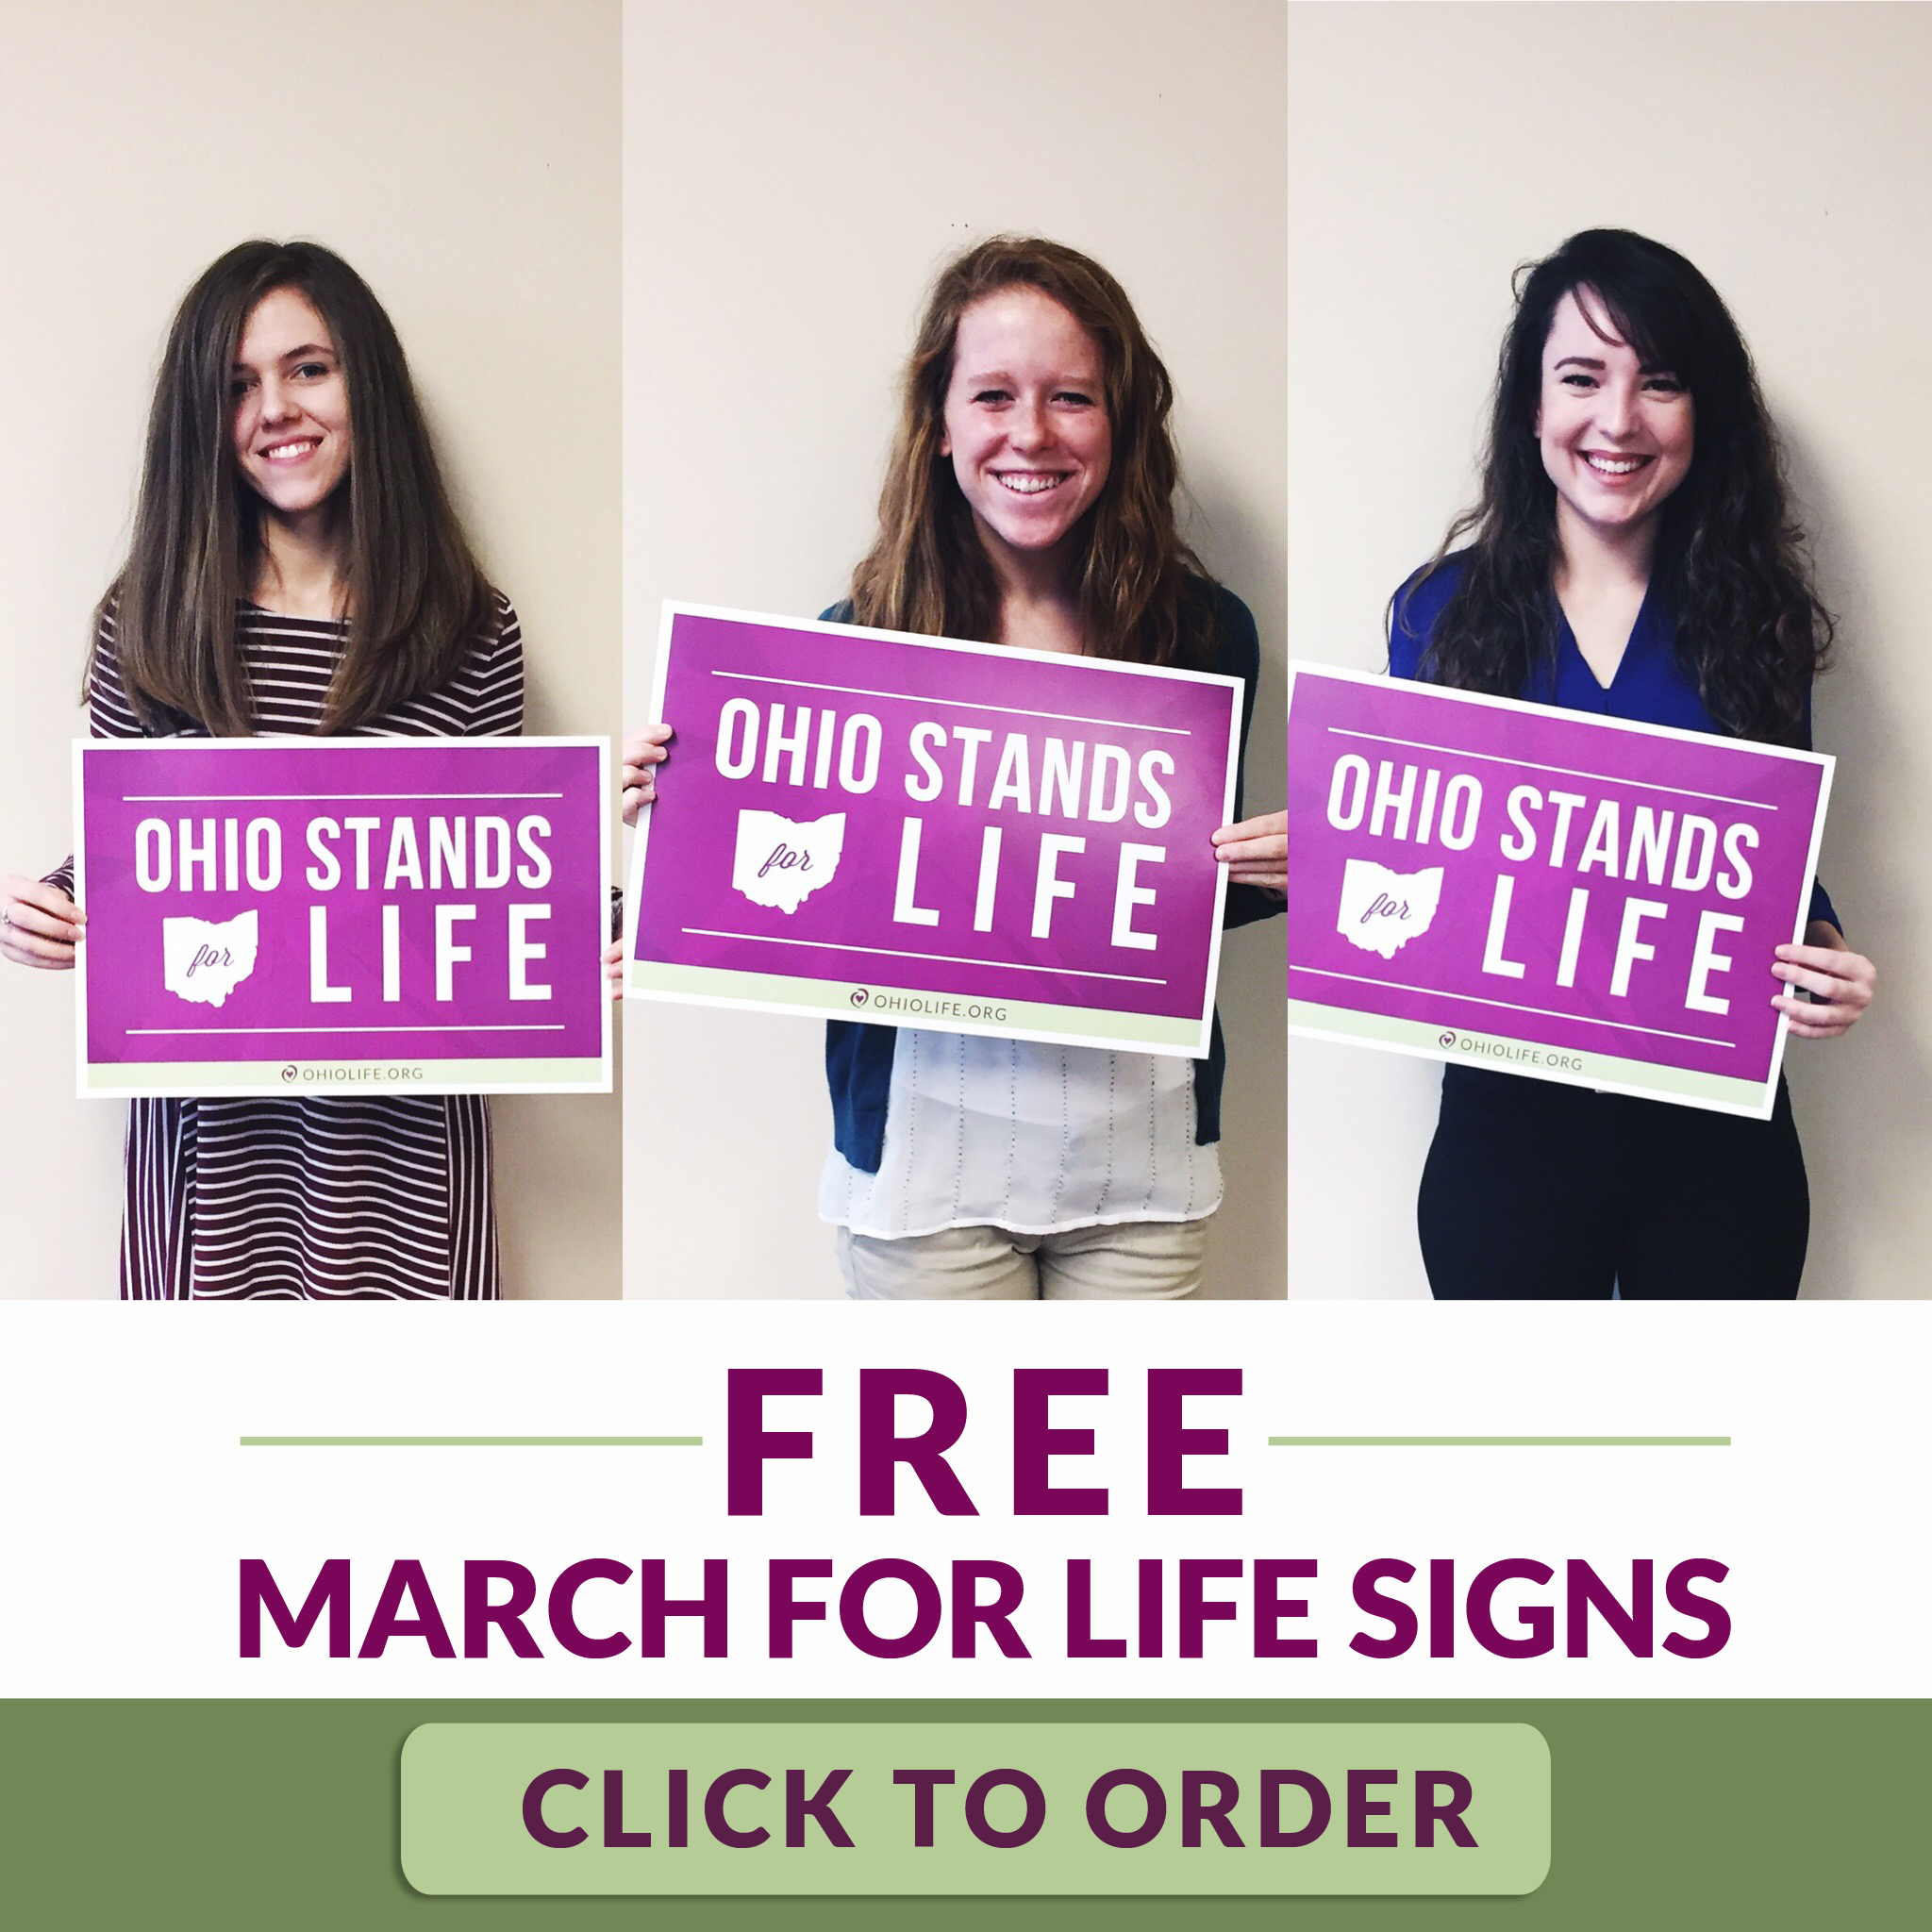 2017_March_for_Life_Signs_-_click_to_order.jpg